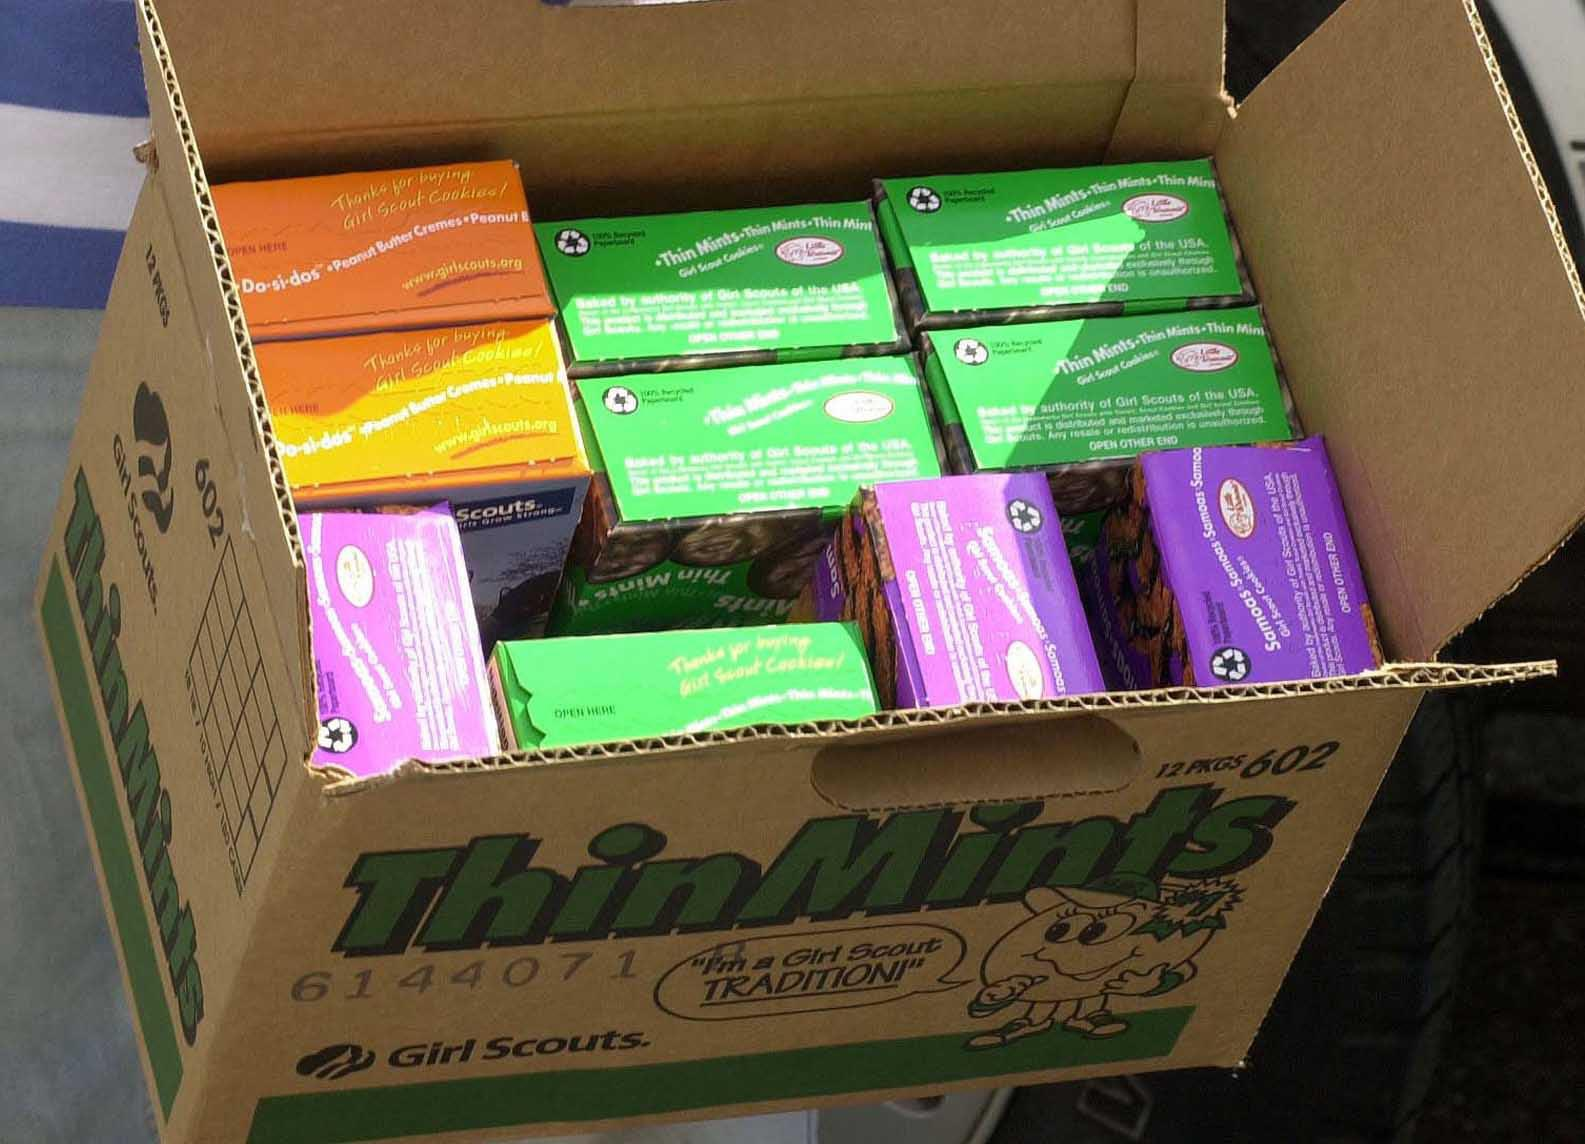 KRT WHAT'S NEXT STORY SLUGGED: TRIVIA KRT PHOTOGRAPH BY JESSICA MANN/ORLANDO SENTINEL (Miami-Out) (March 29) Tis the season for Girl Scout cookies. (jt) 2005